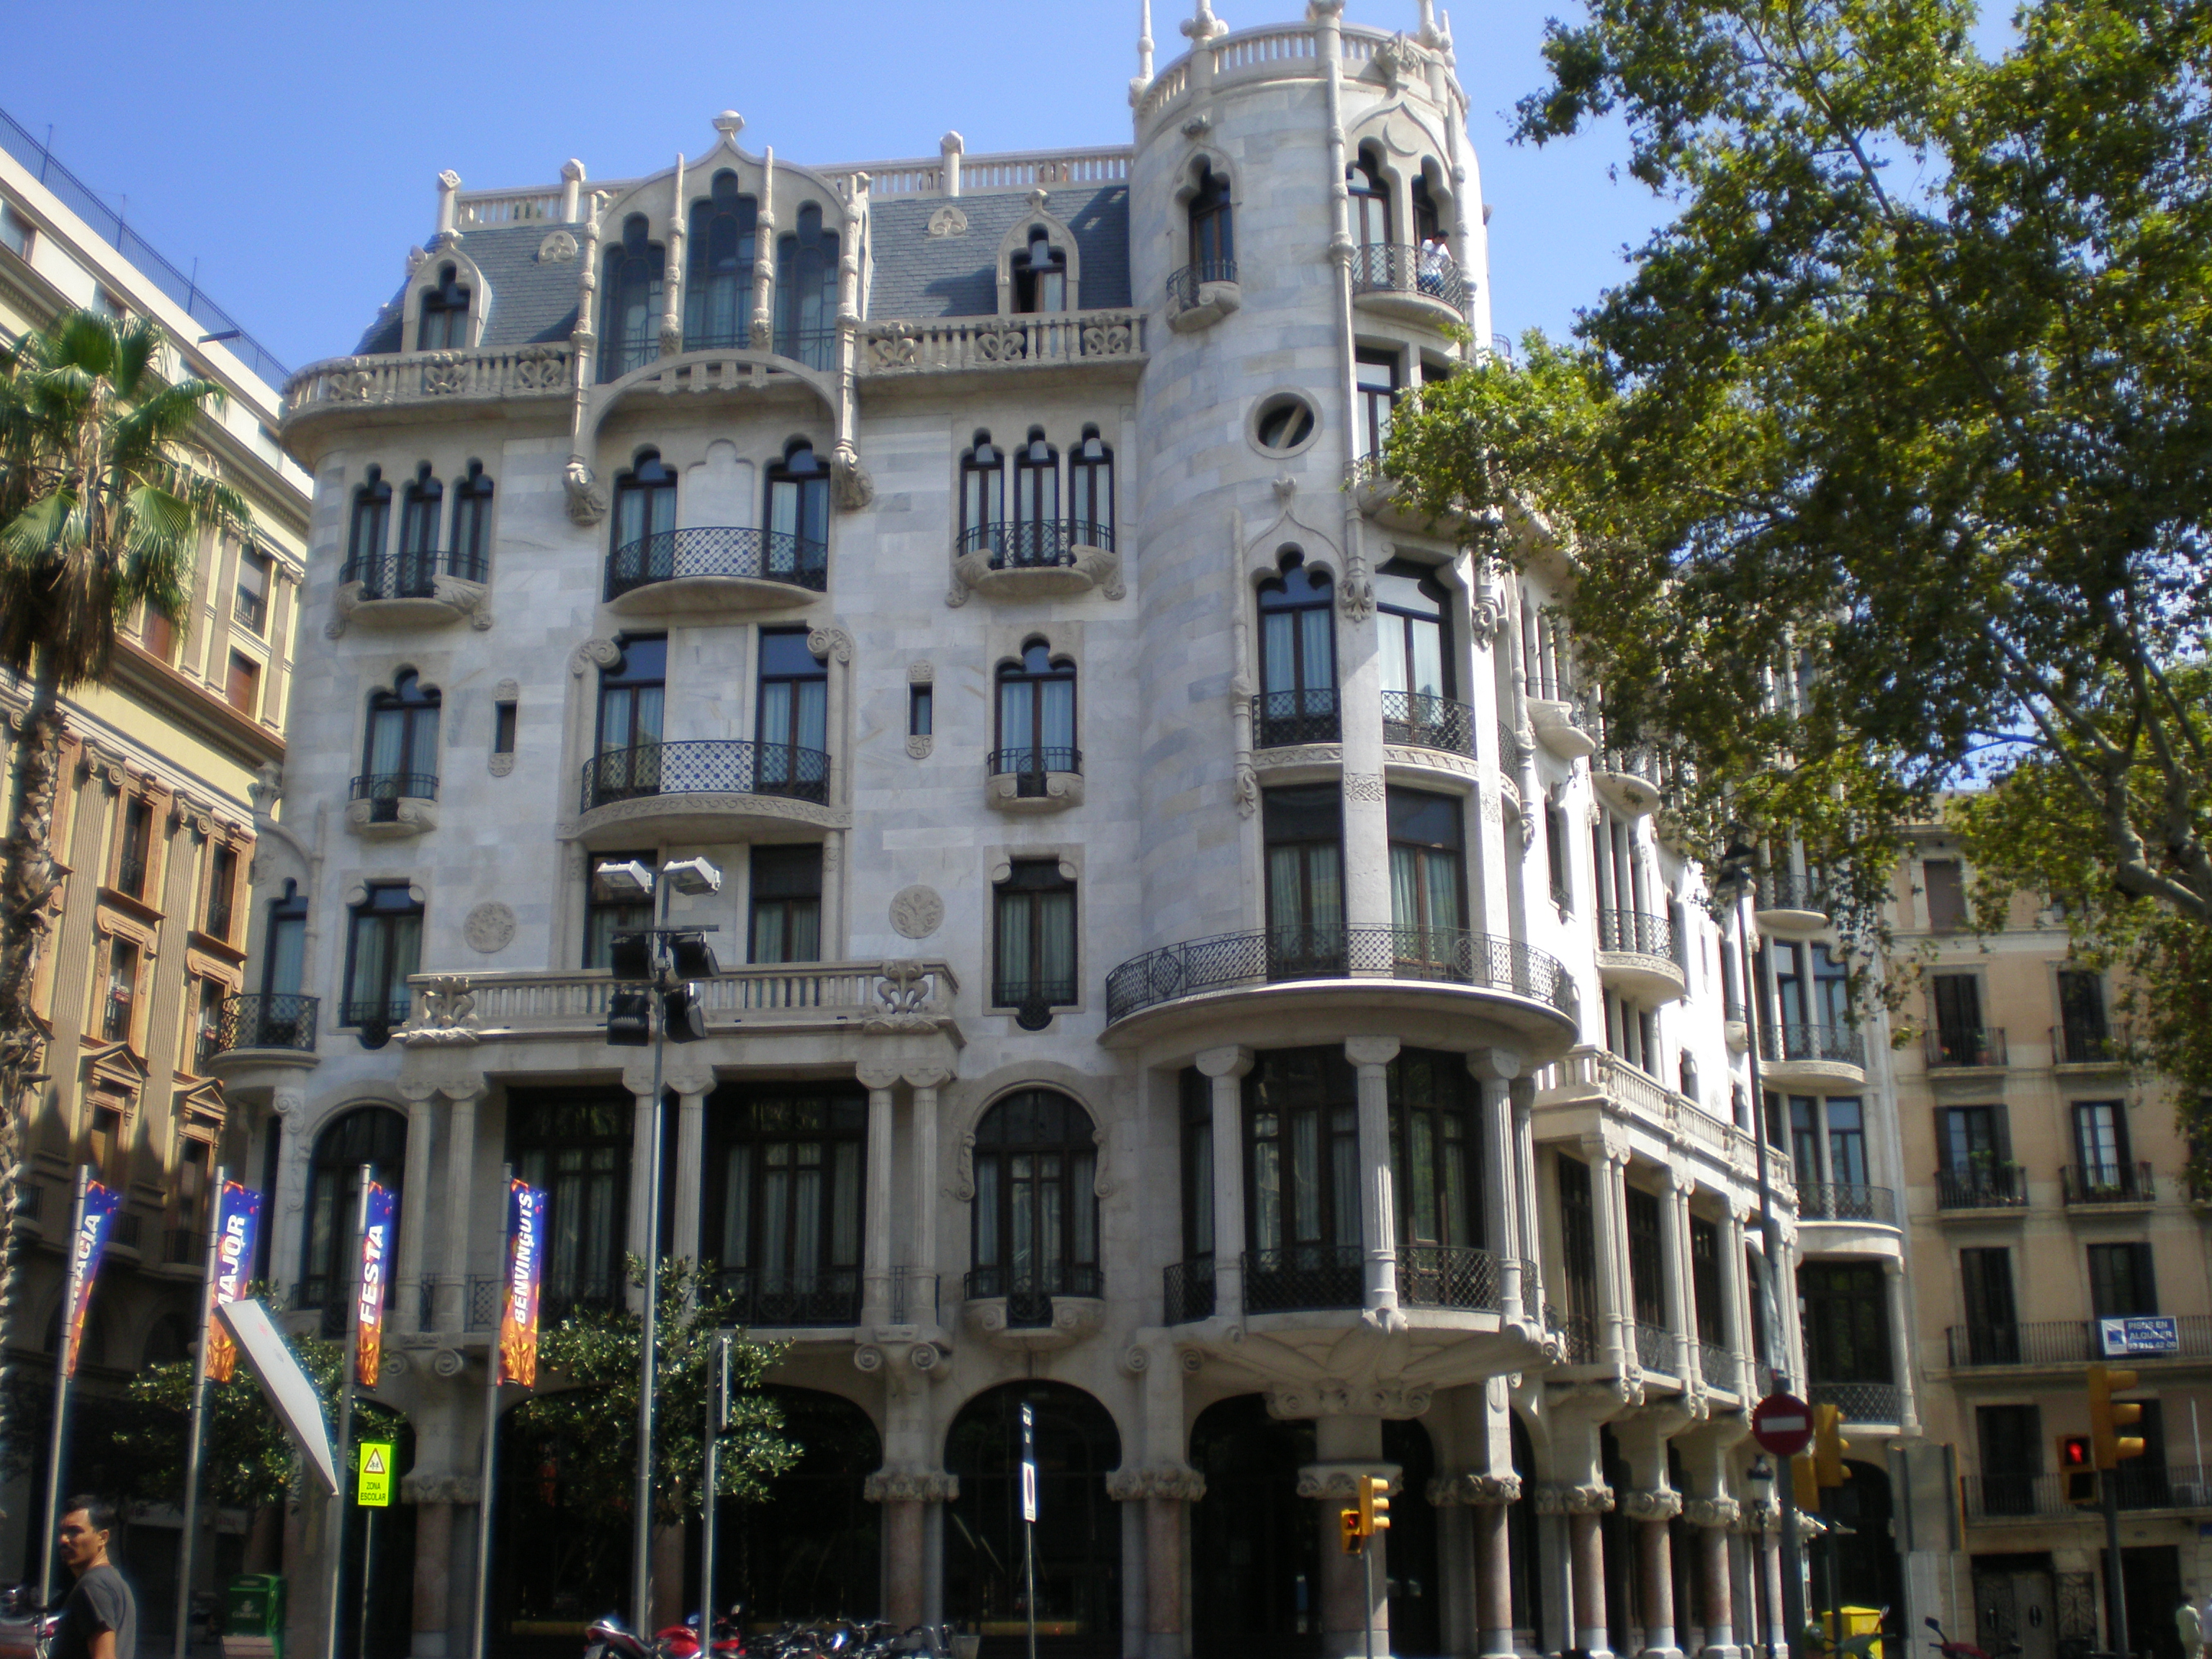 Can i fit casa batllo casa mila sagrada familia and parc guell in one long day rick steves - Restaurant casa fuster ...